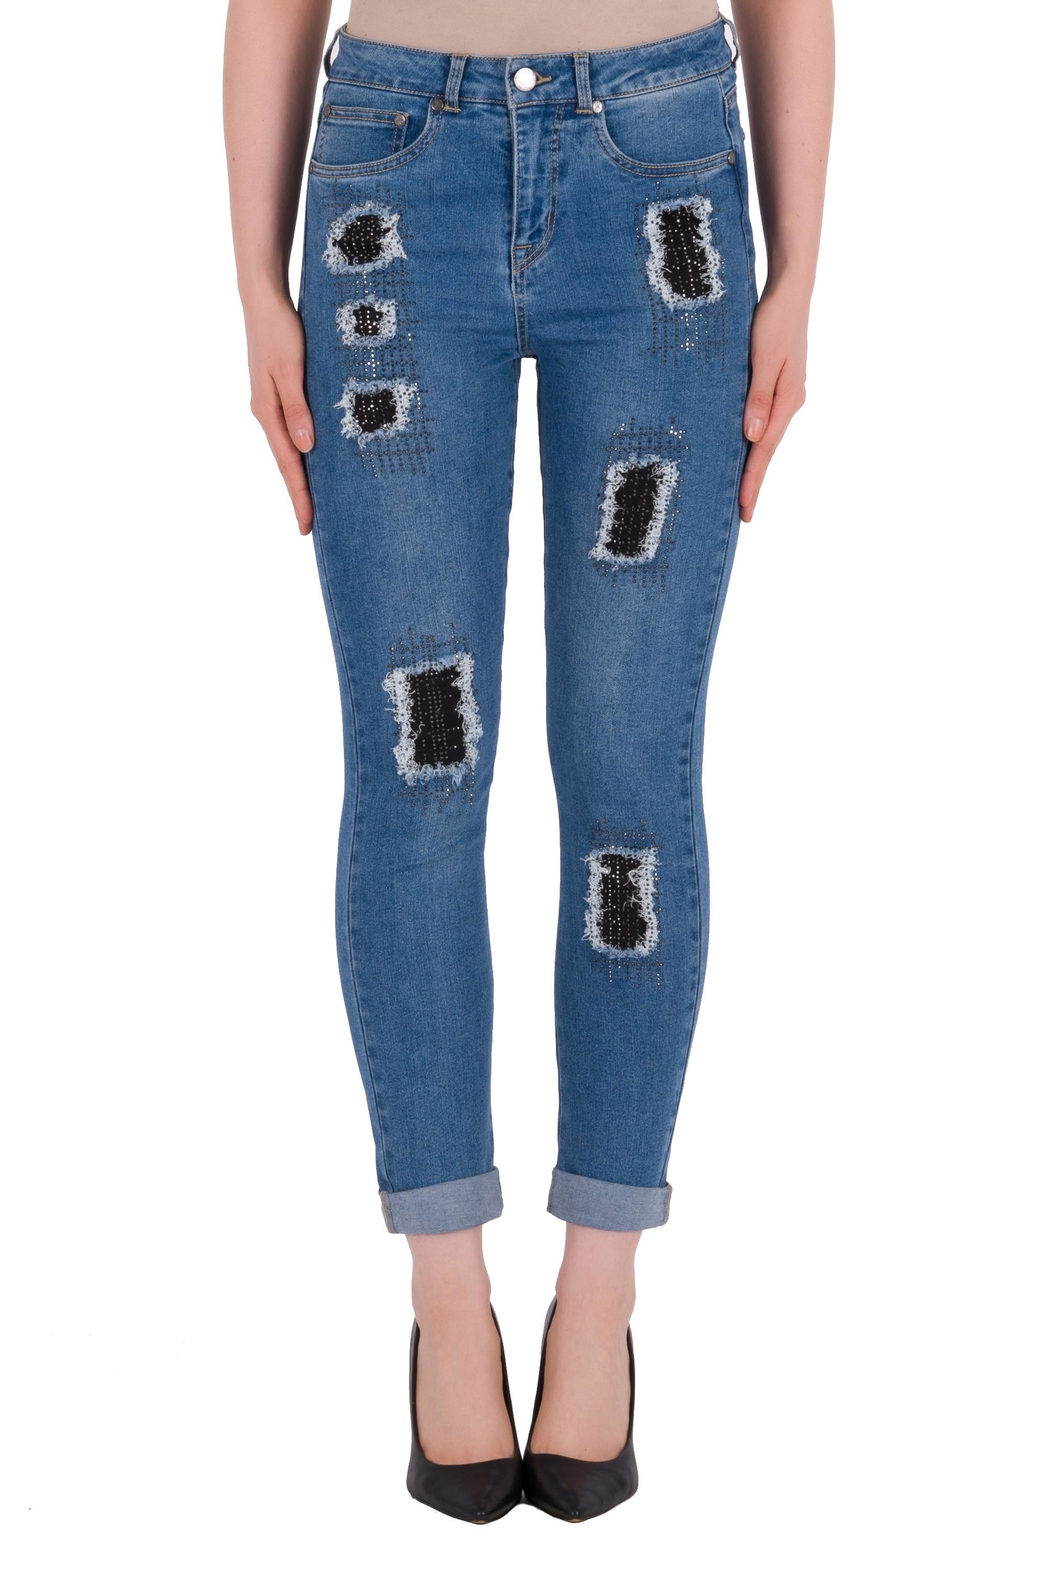 Joseph Ribkoff Rip Accent Jeans - Front Cropped Image